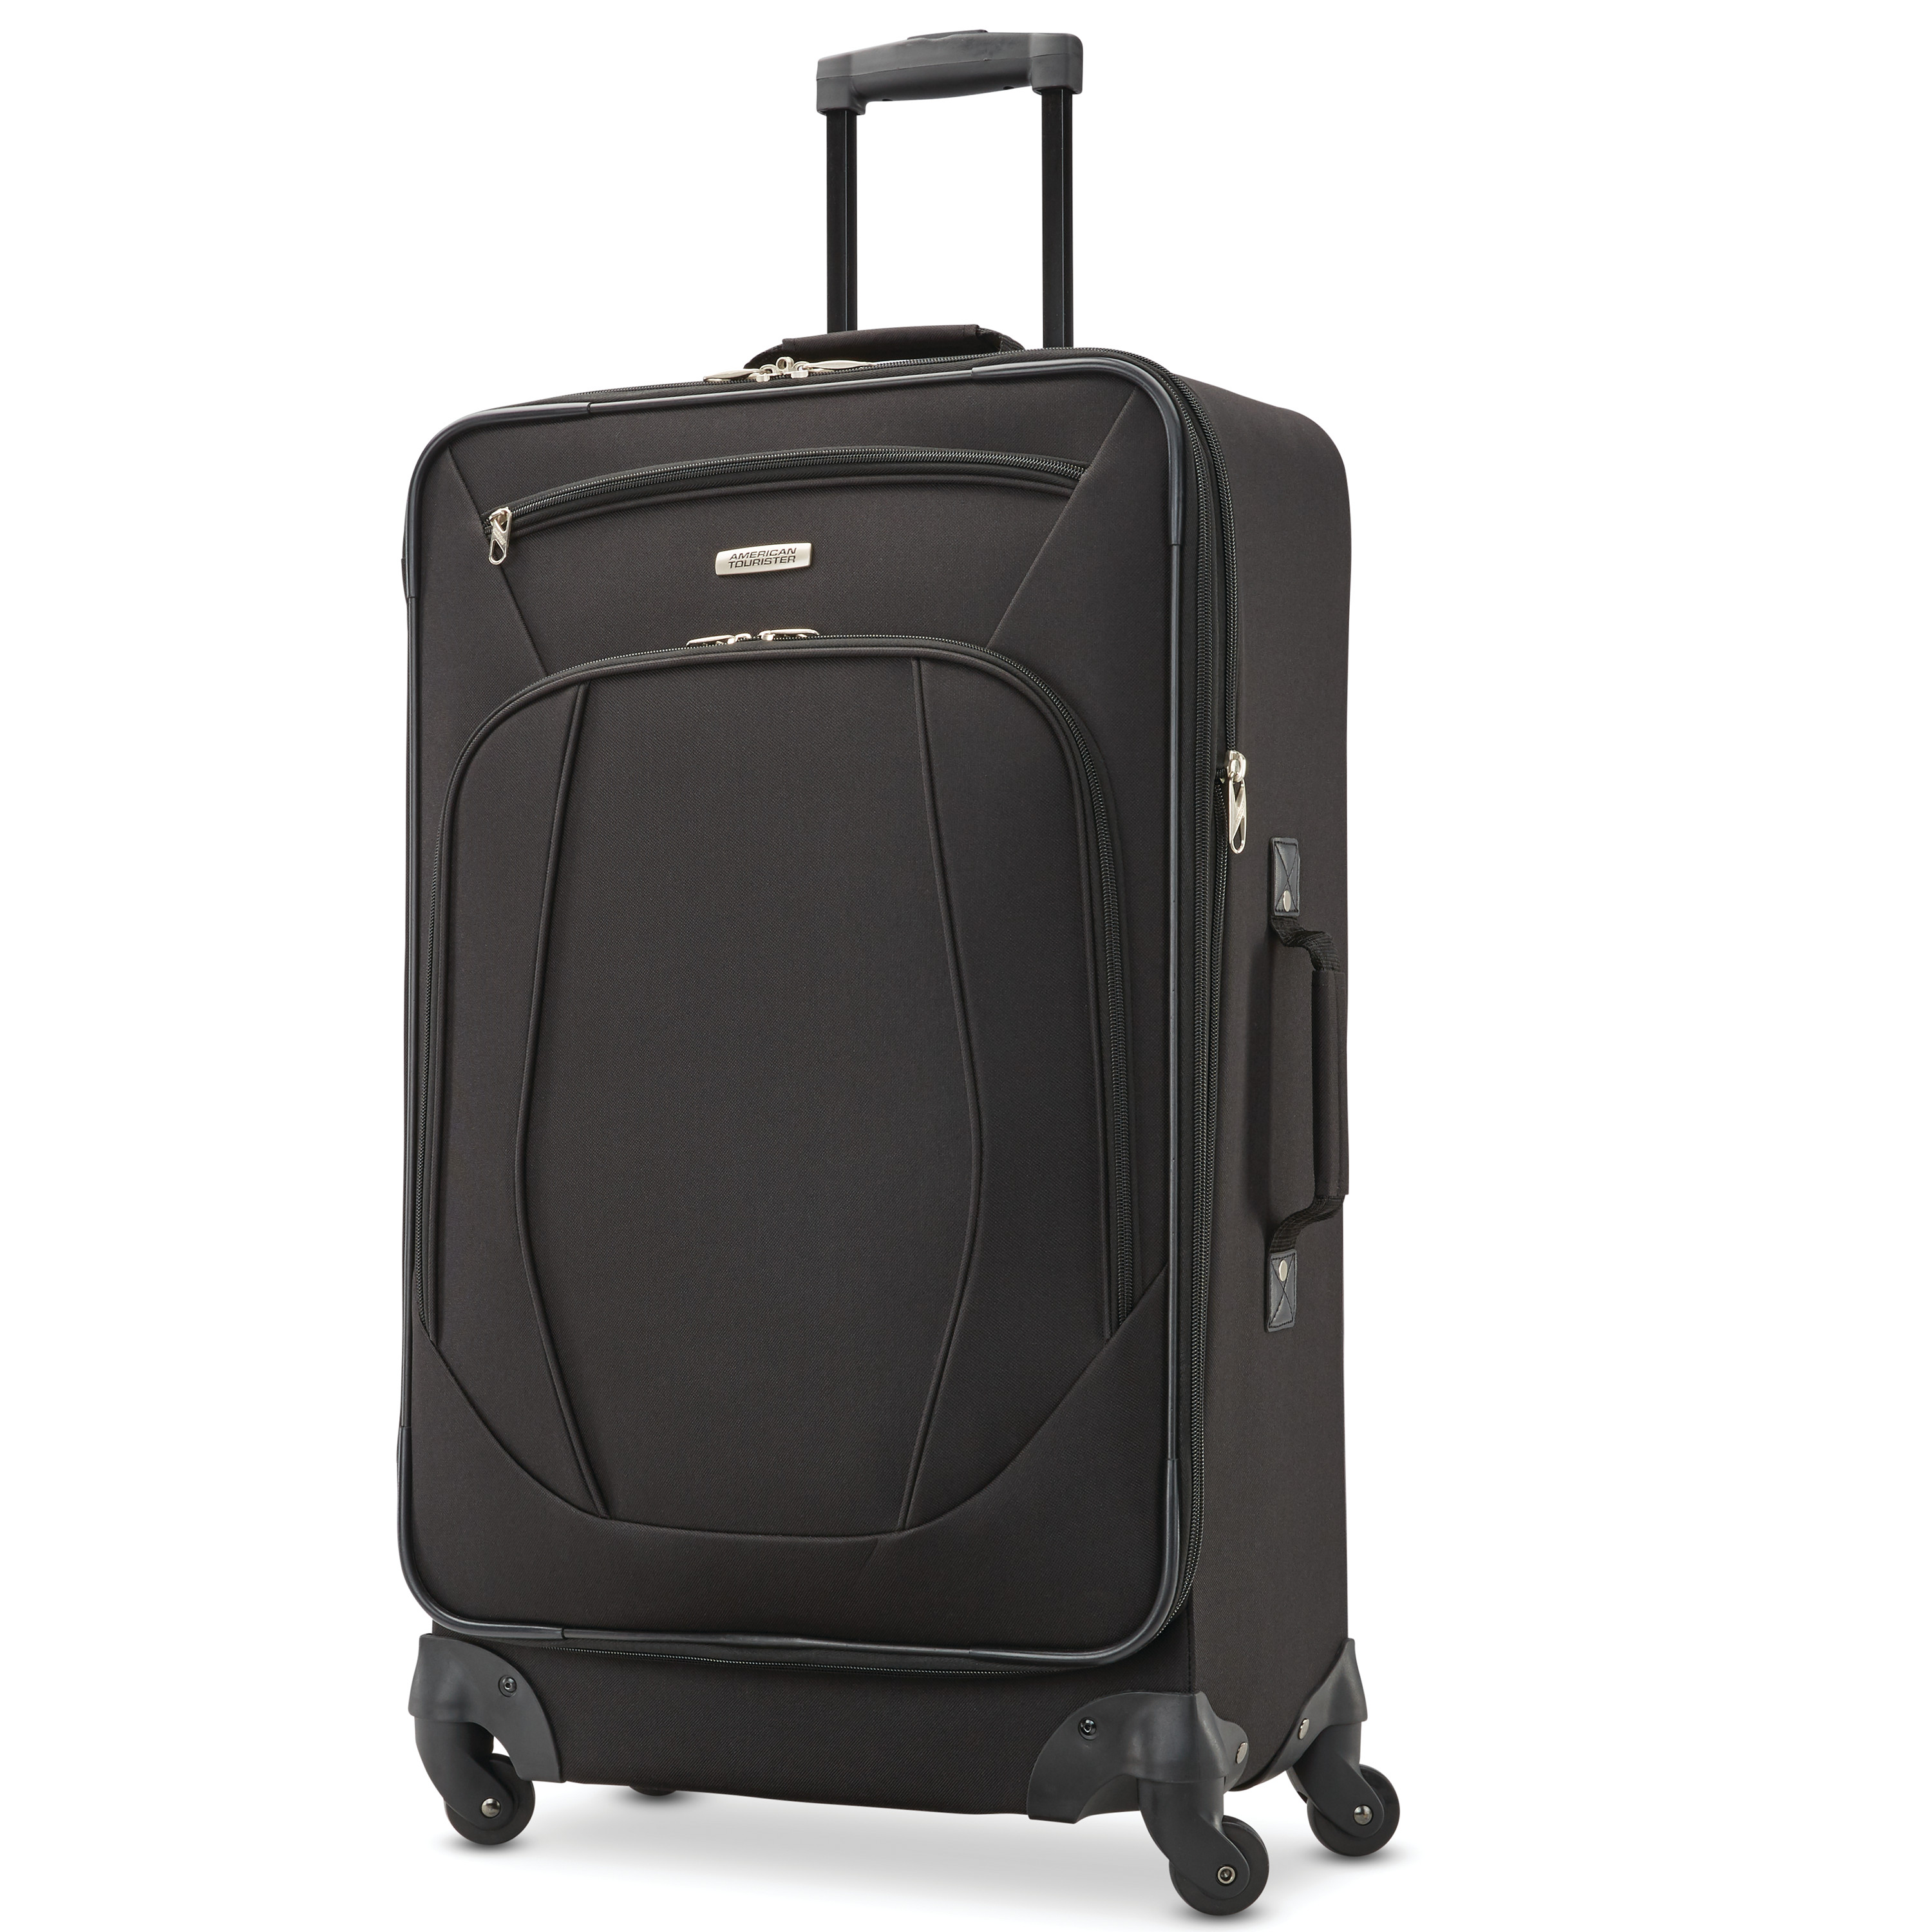 American-Tourister-Riverbend-4-Piece-Set thumbnail 8